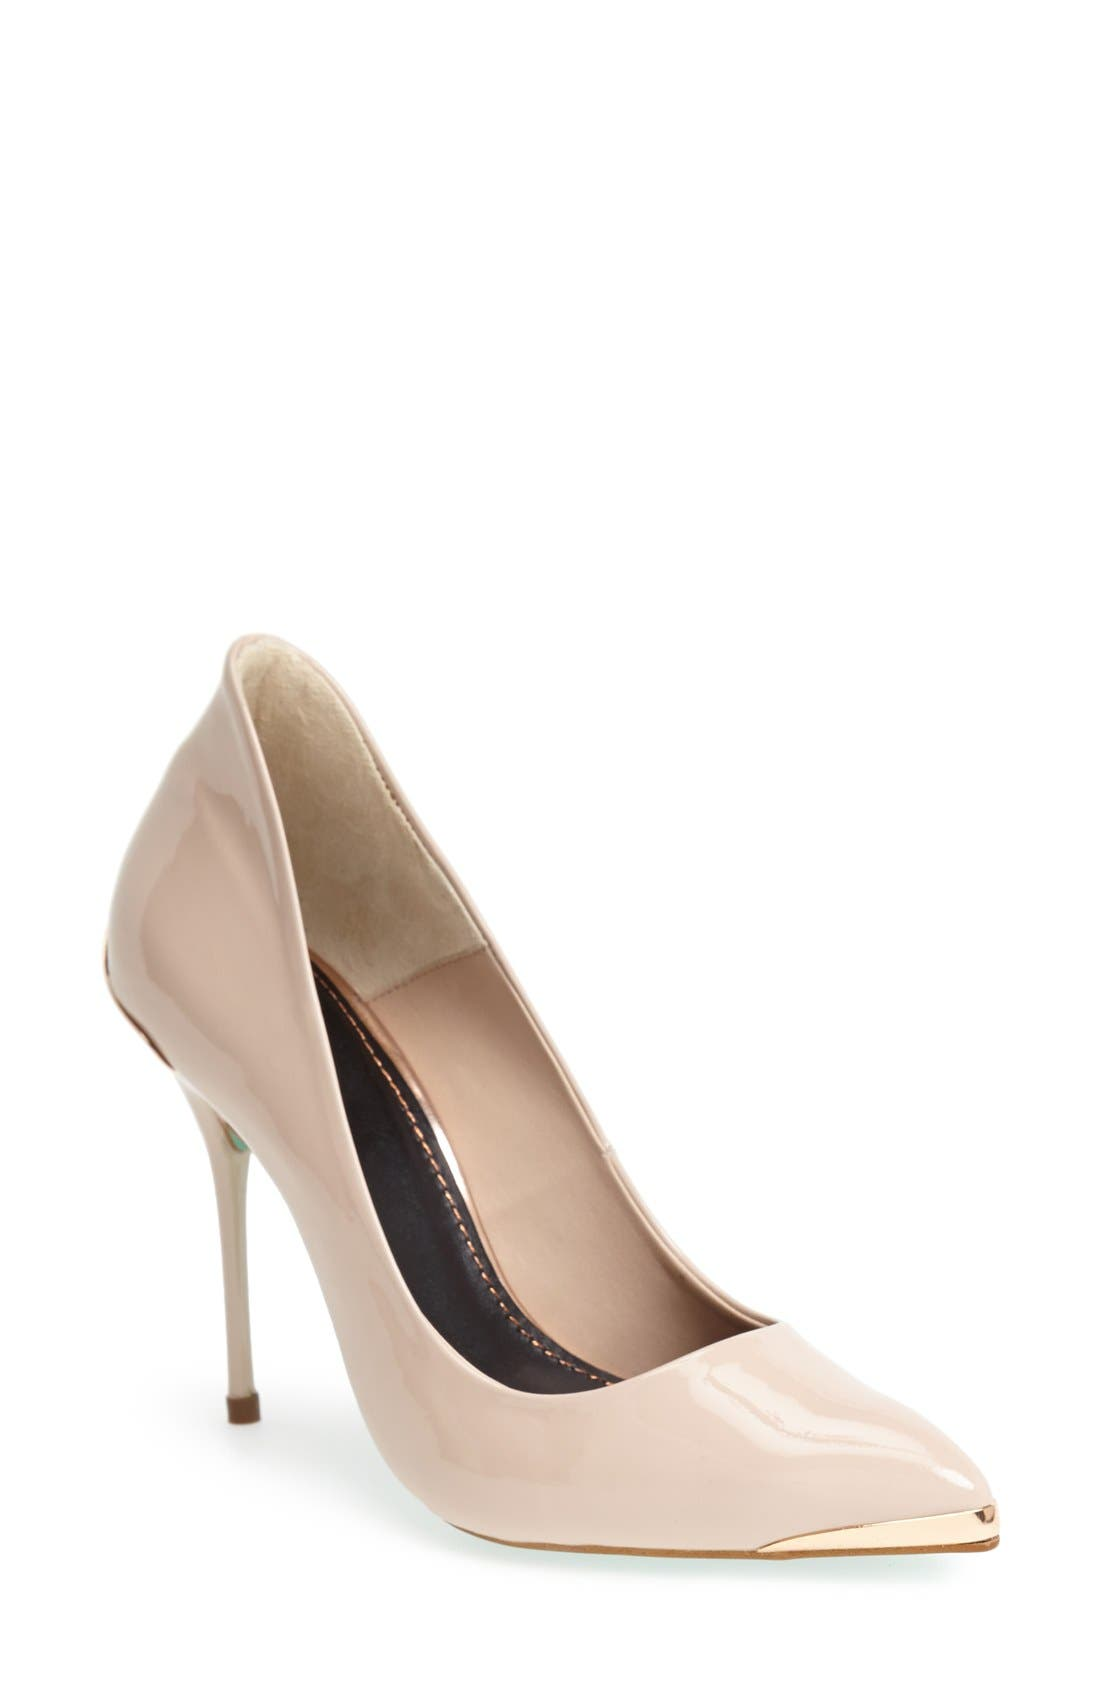 Alternate Image 1 Selected - Topshop by CJG 'High Pitch' Patent Leather Pump (Women)